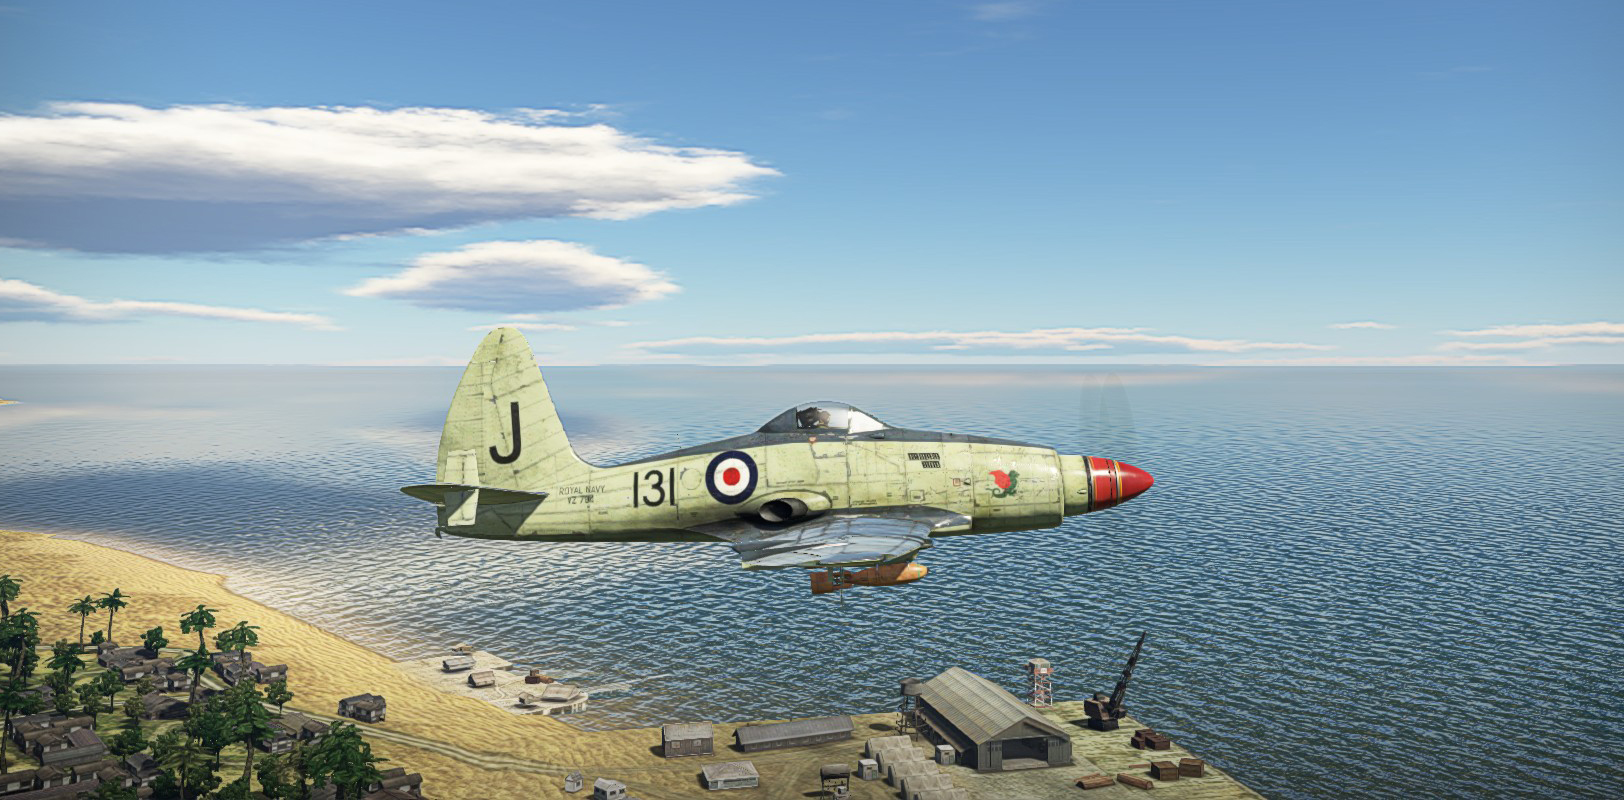 1956 Wyvern S4 on the way to target